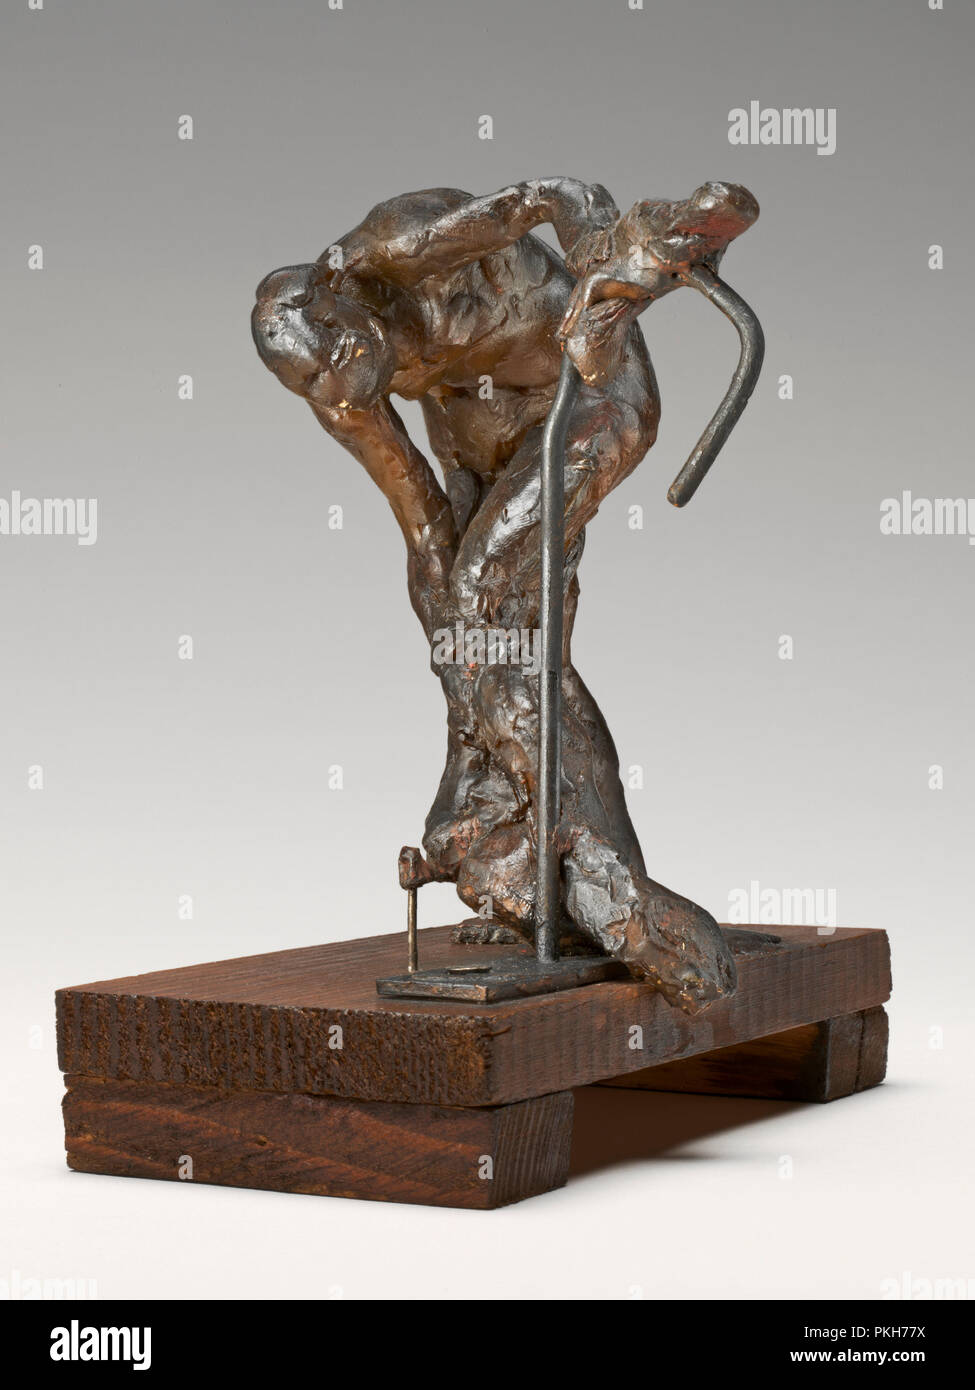 Woman Washing Her Left Leg. Dated: c. 1890s. Dimensions: overall without base: 14.7 x 11.4 x 13.5 cm (5 13/16 x 4 1/2 x 5 5/16 in.). Medium: pigmented beeswax, metal armature, on wooden base. Museum: National Gallery of Art, Washington DC. Author: EDGAR DEGAS. - Stock Image